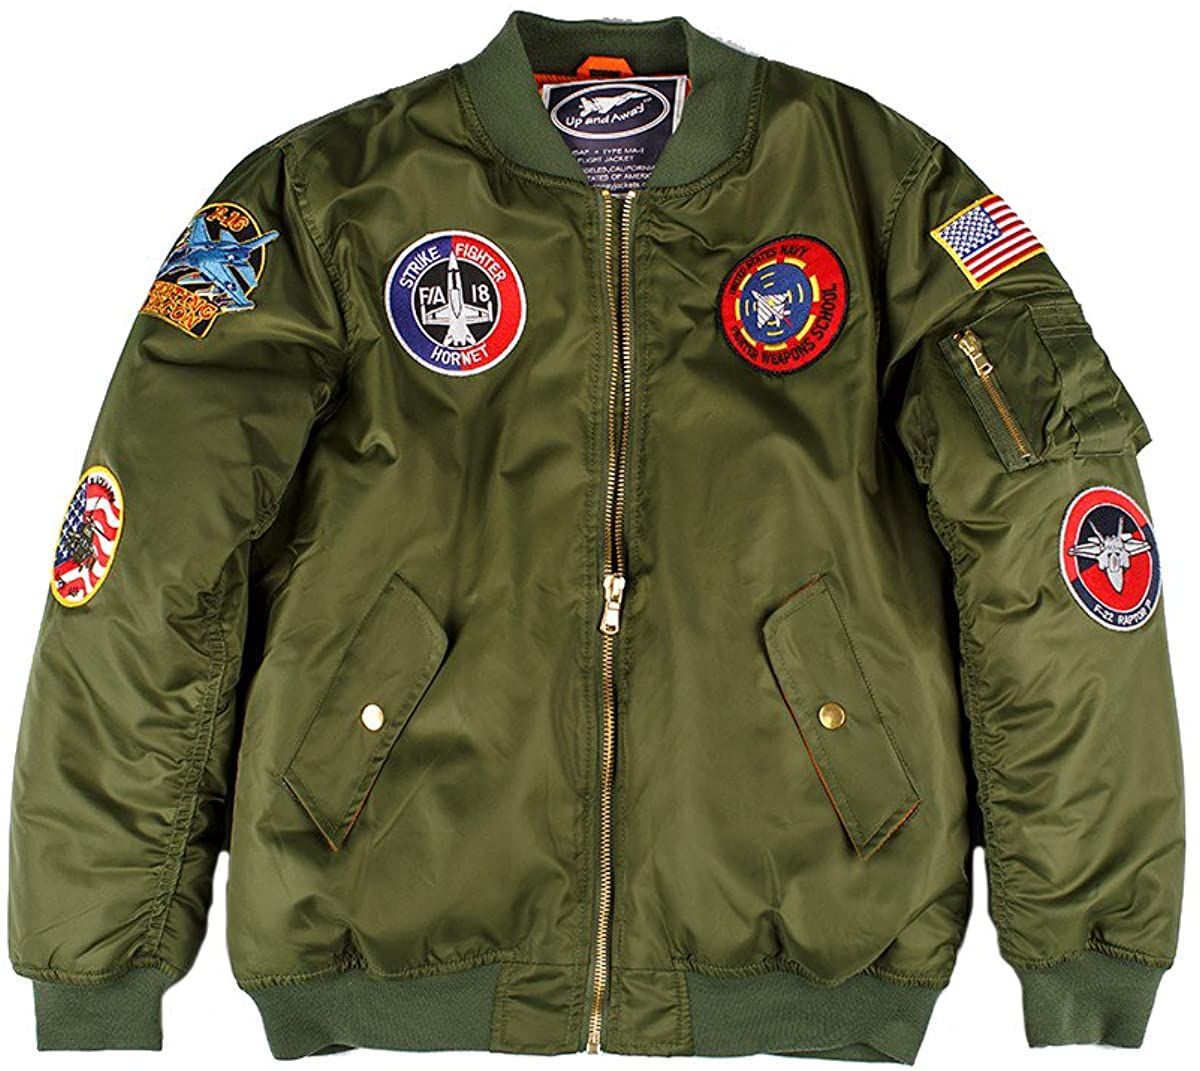 Up and Away MA-1 Flight Bomber Jacket (Green)